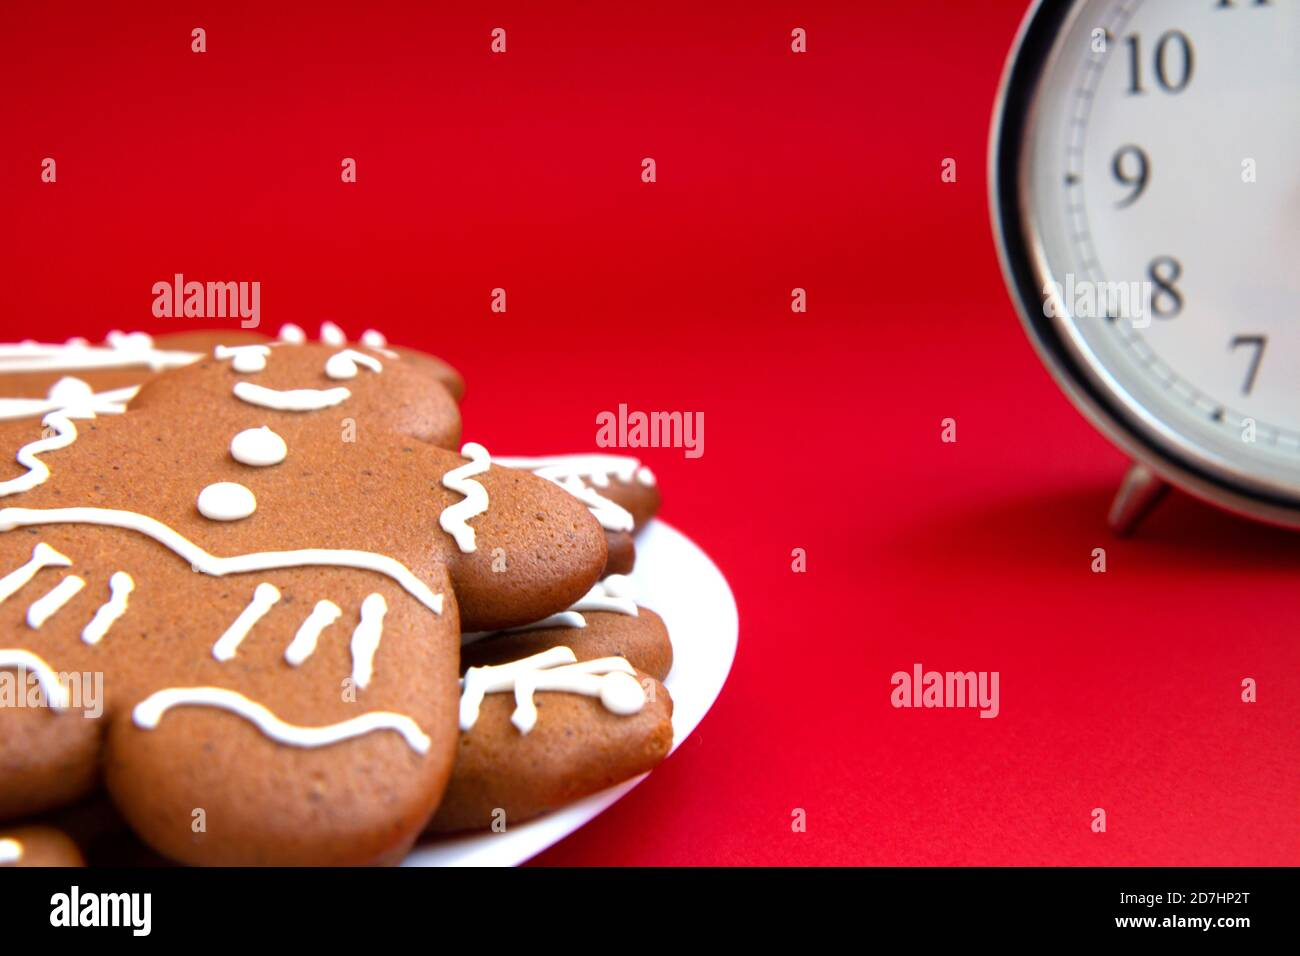 Beautiful vintage silver alarm clock and in the foreground plate of gingerbread cookies on a bright red background. Time concept. Holiday routine. Wai Stock Photo